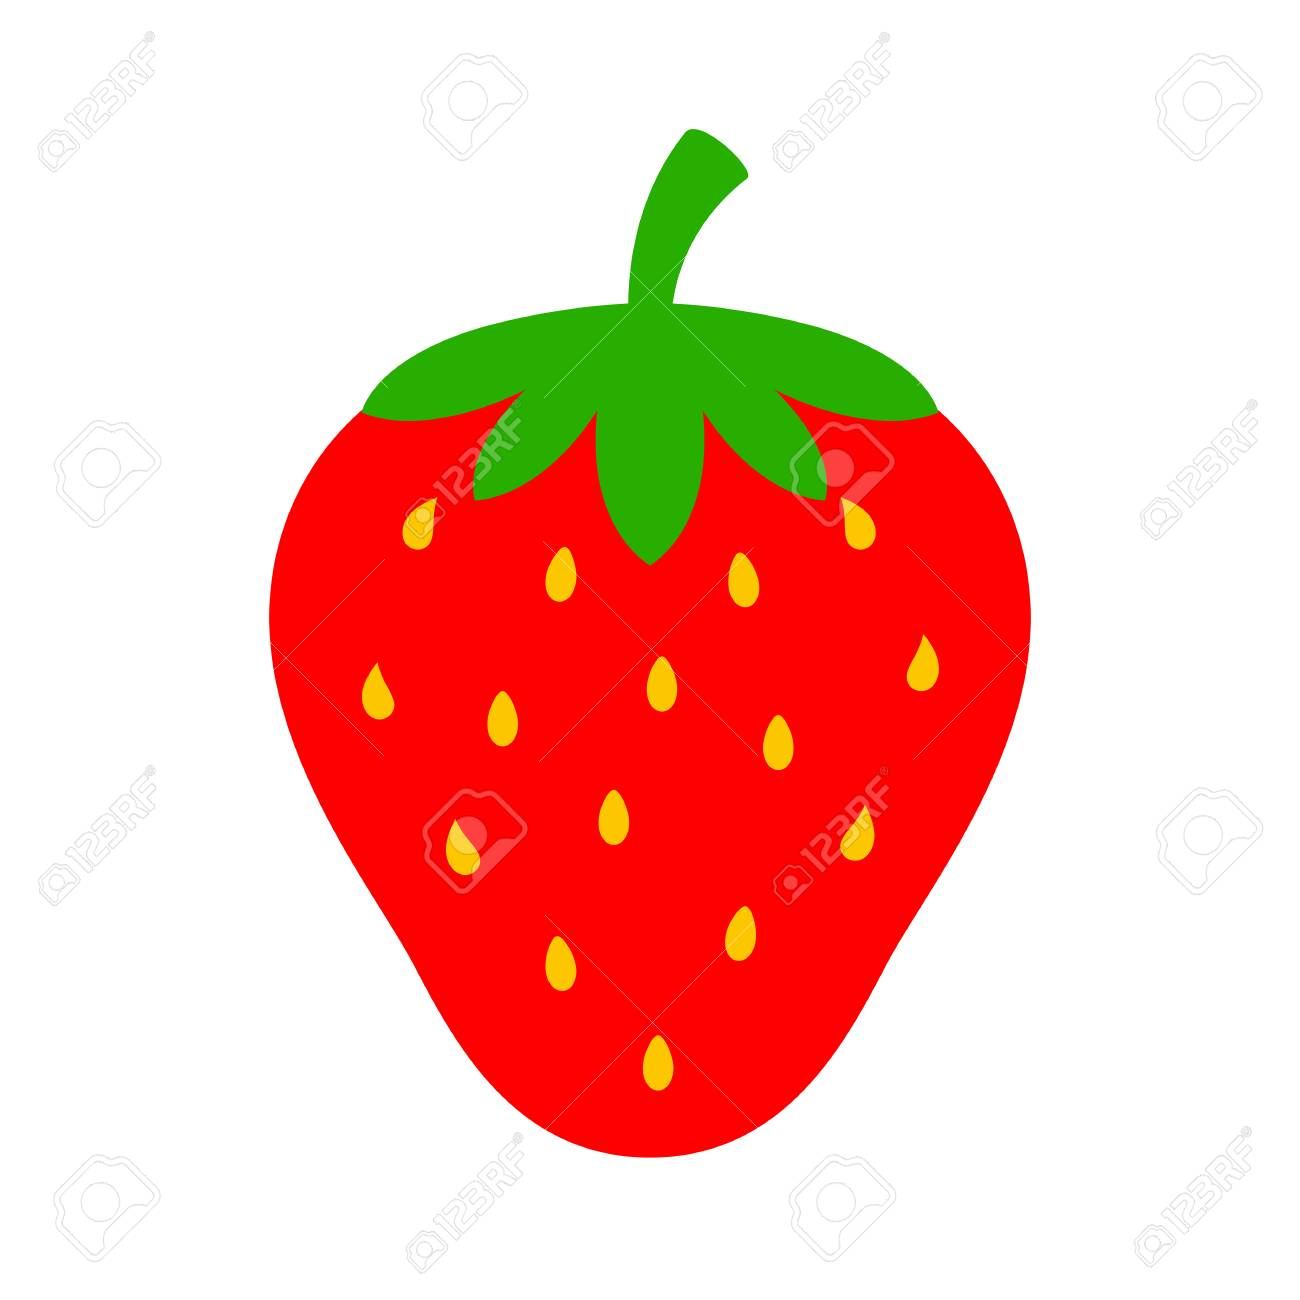 strawberry vector icon royalty free cliparts vectors and stock rh 123rf com strawberry vector free download strawberry vector freepik